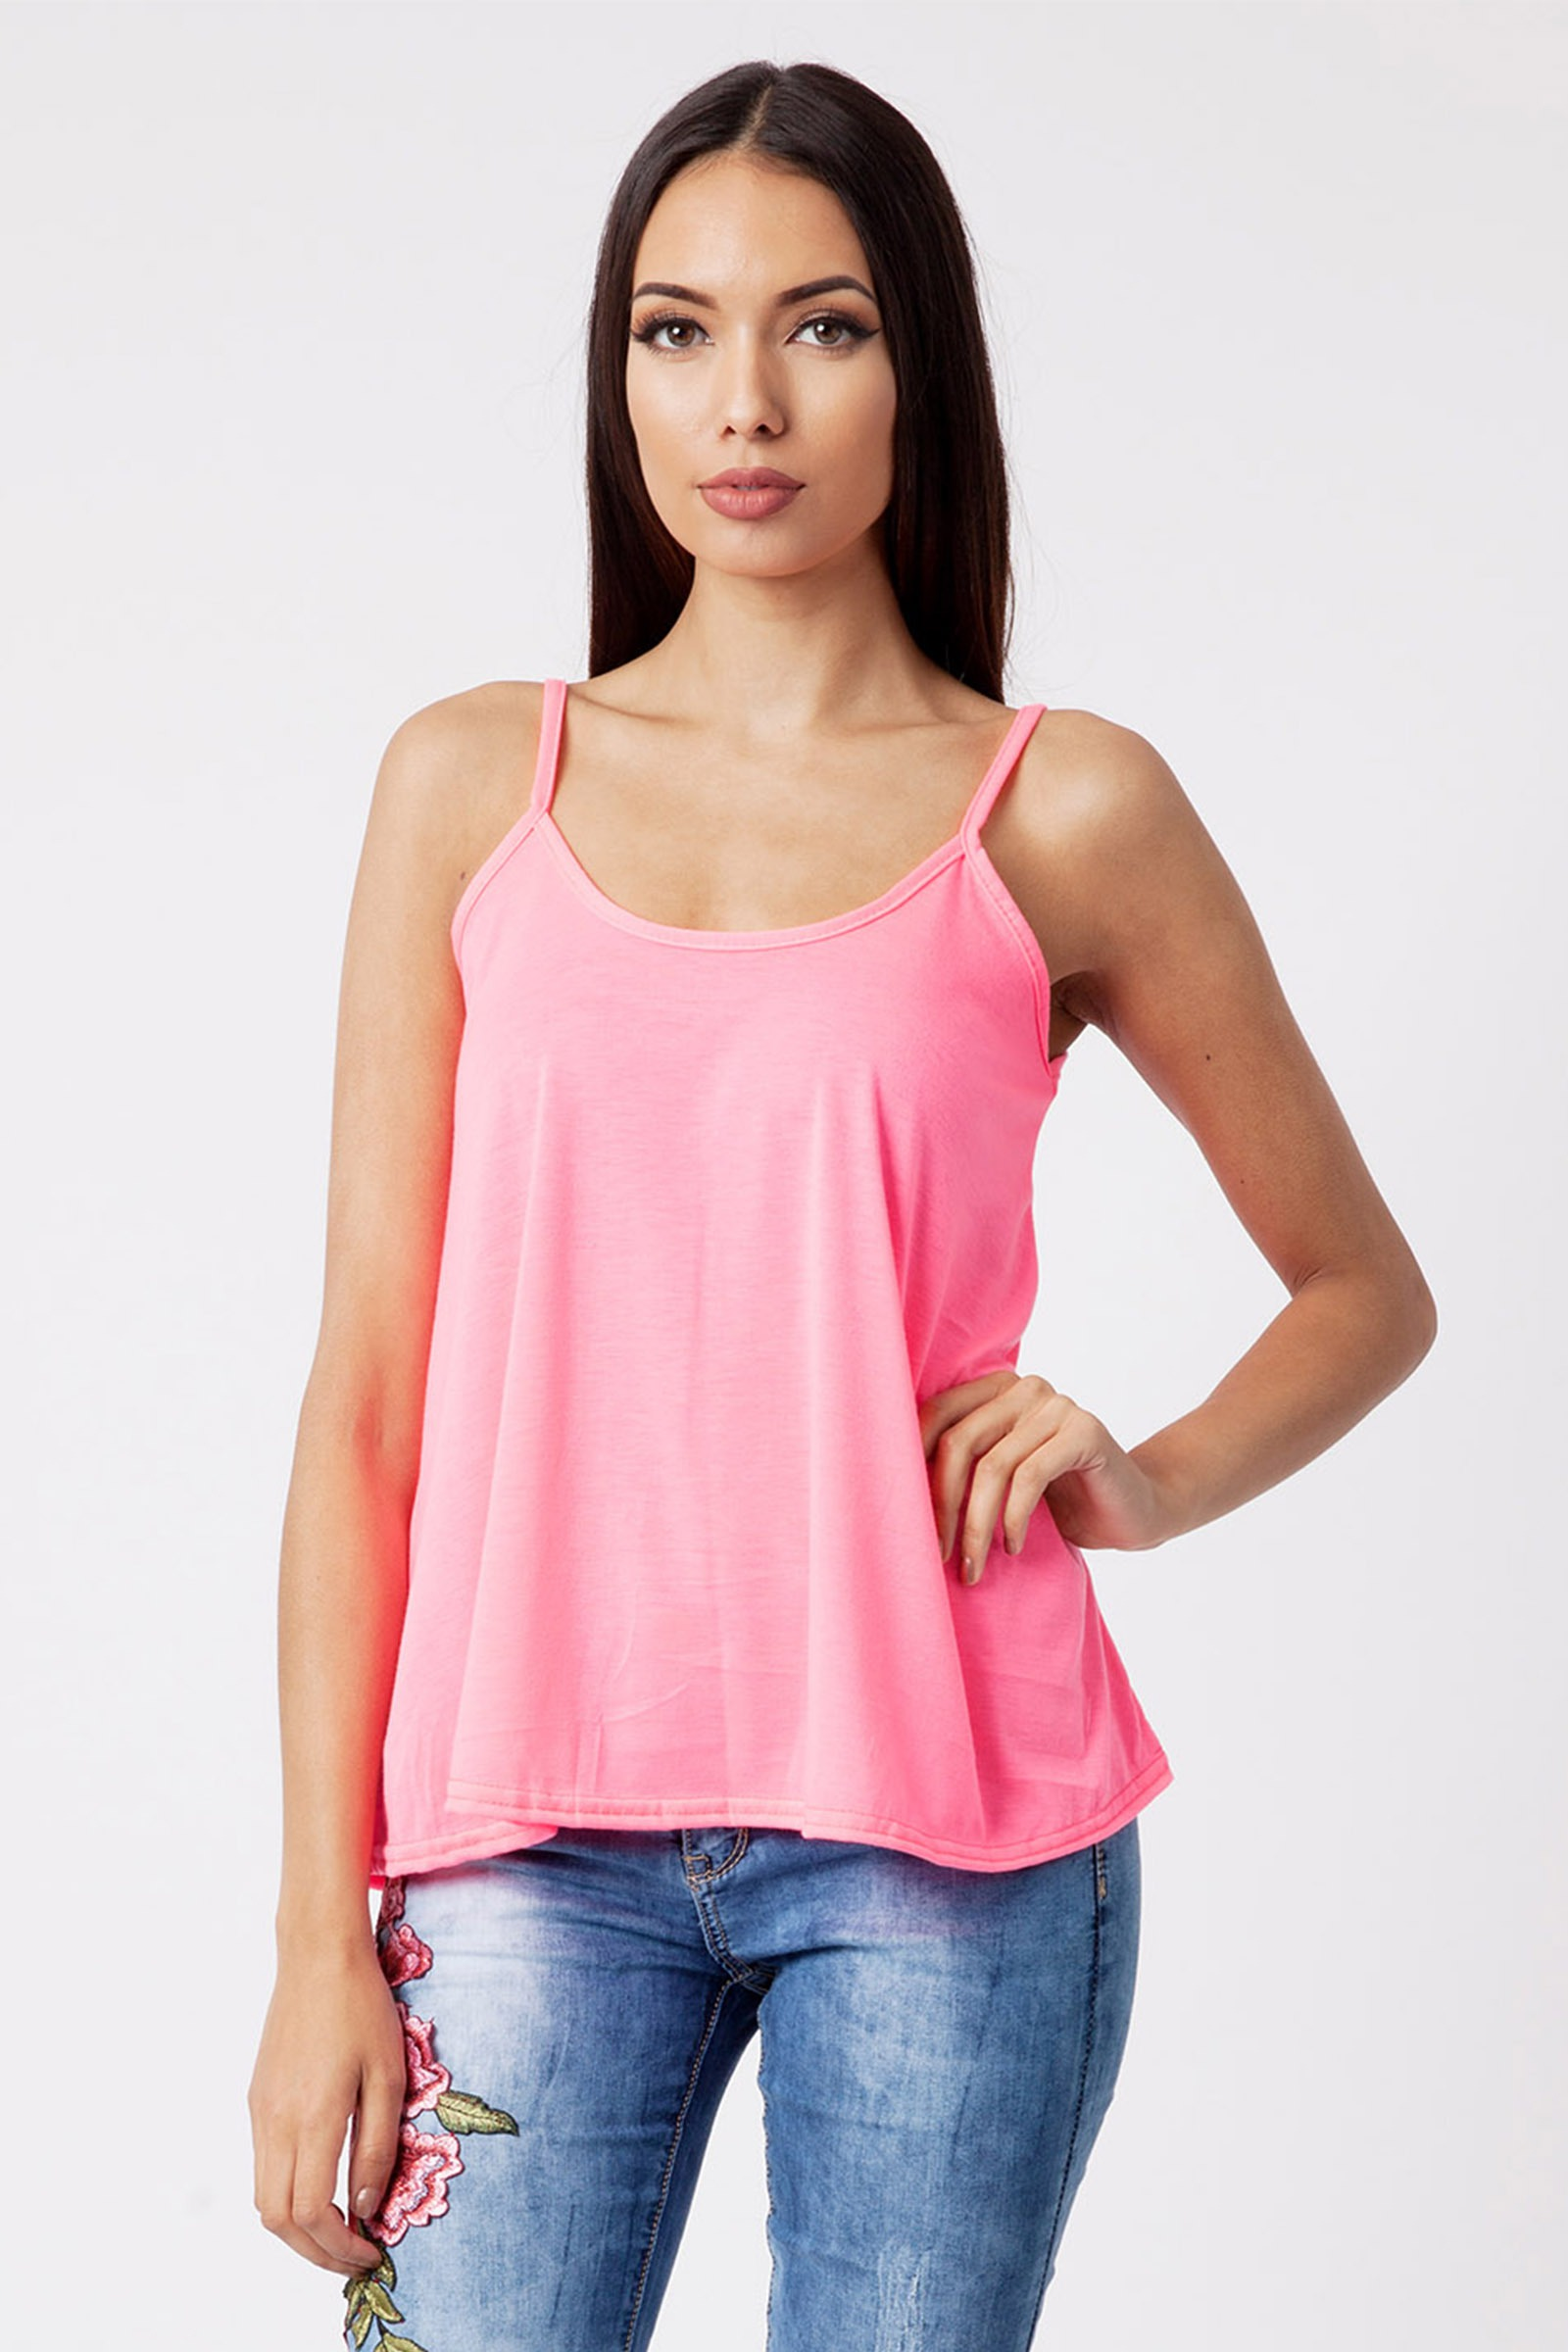 clearance sale hot sales online store Caela Neon Pink Cami Swing Vest | Clothing | Modamore